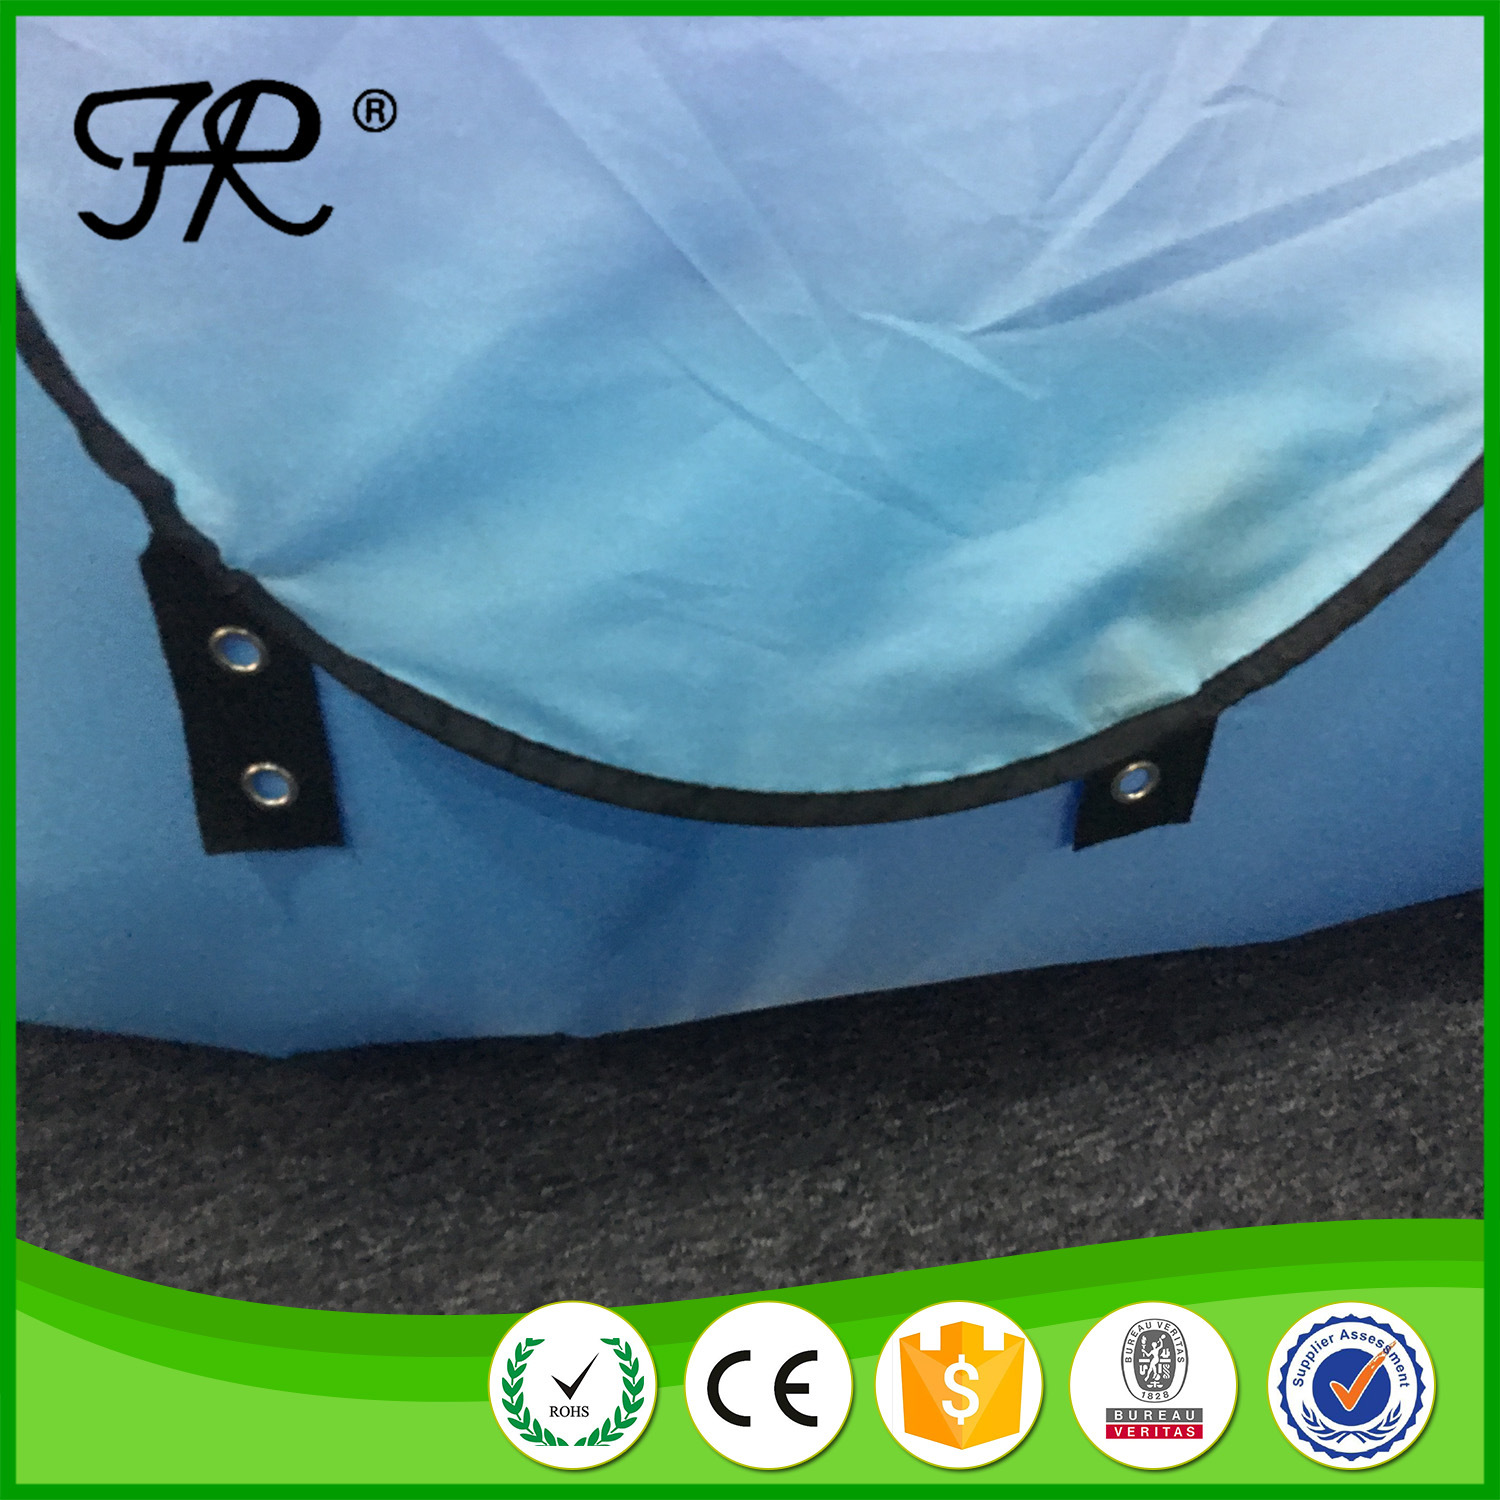 Oem 3 Season Type And Air Filling Inflatable Sofa Bed